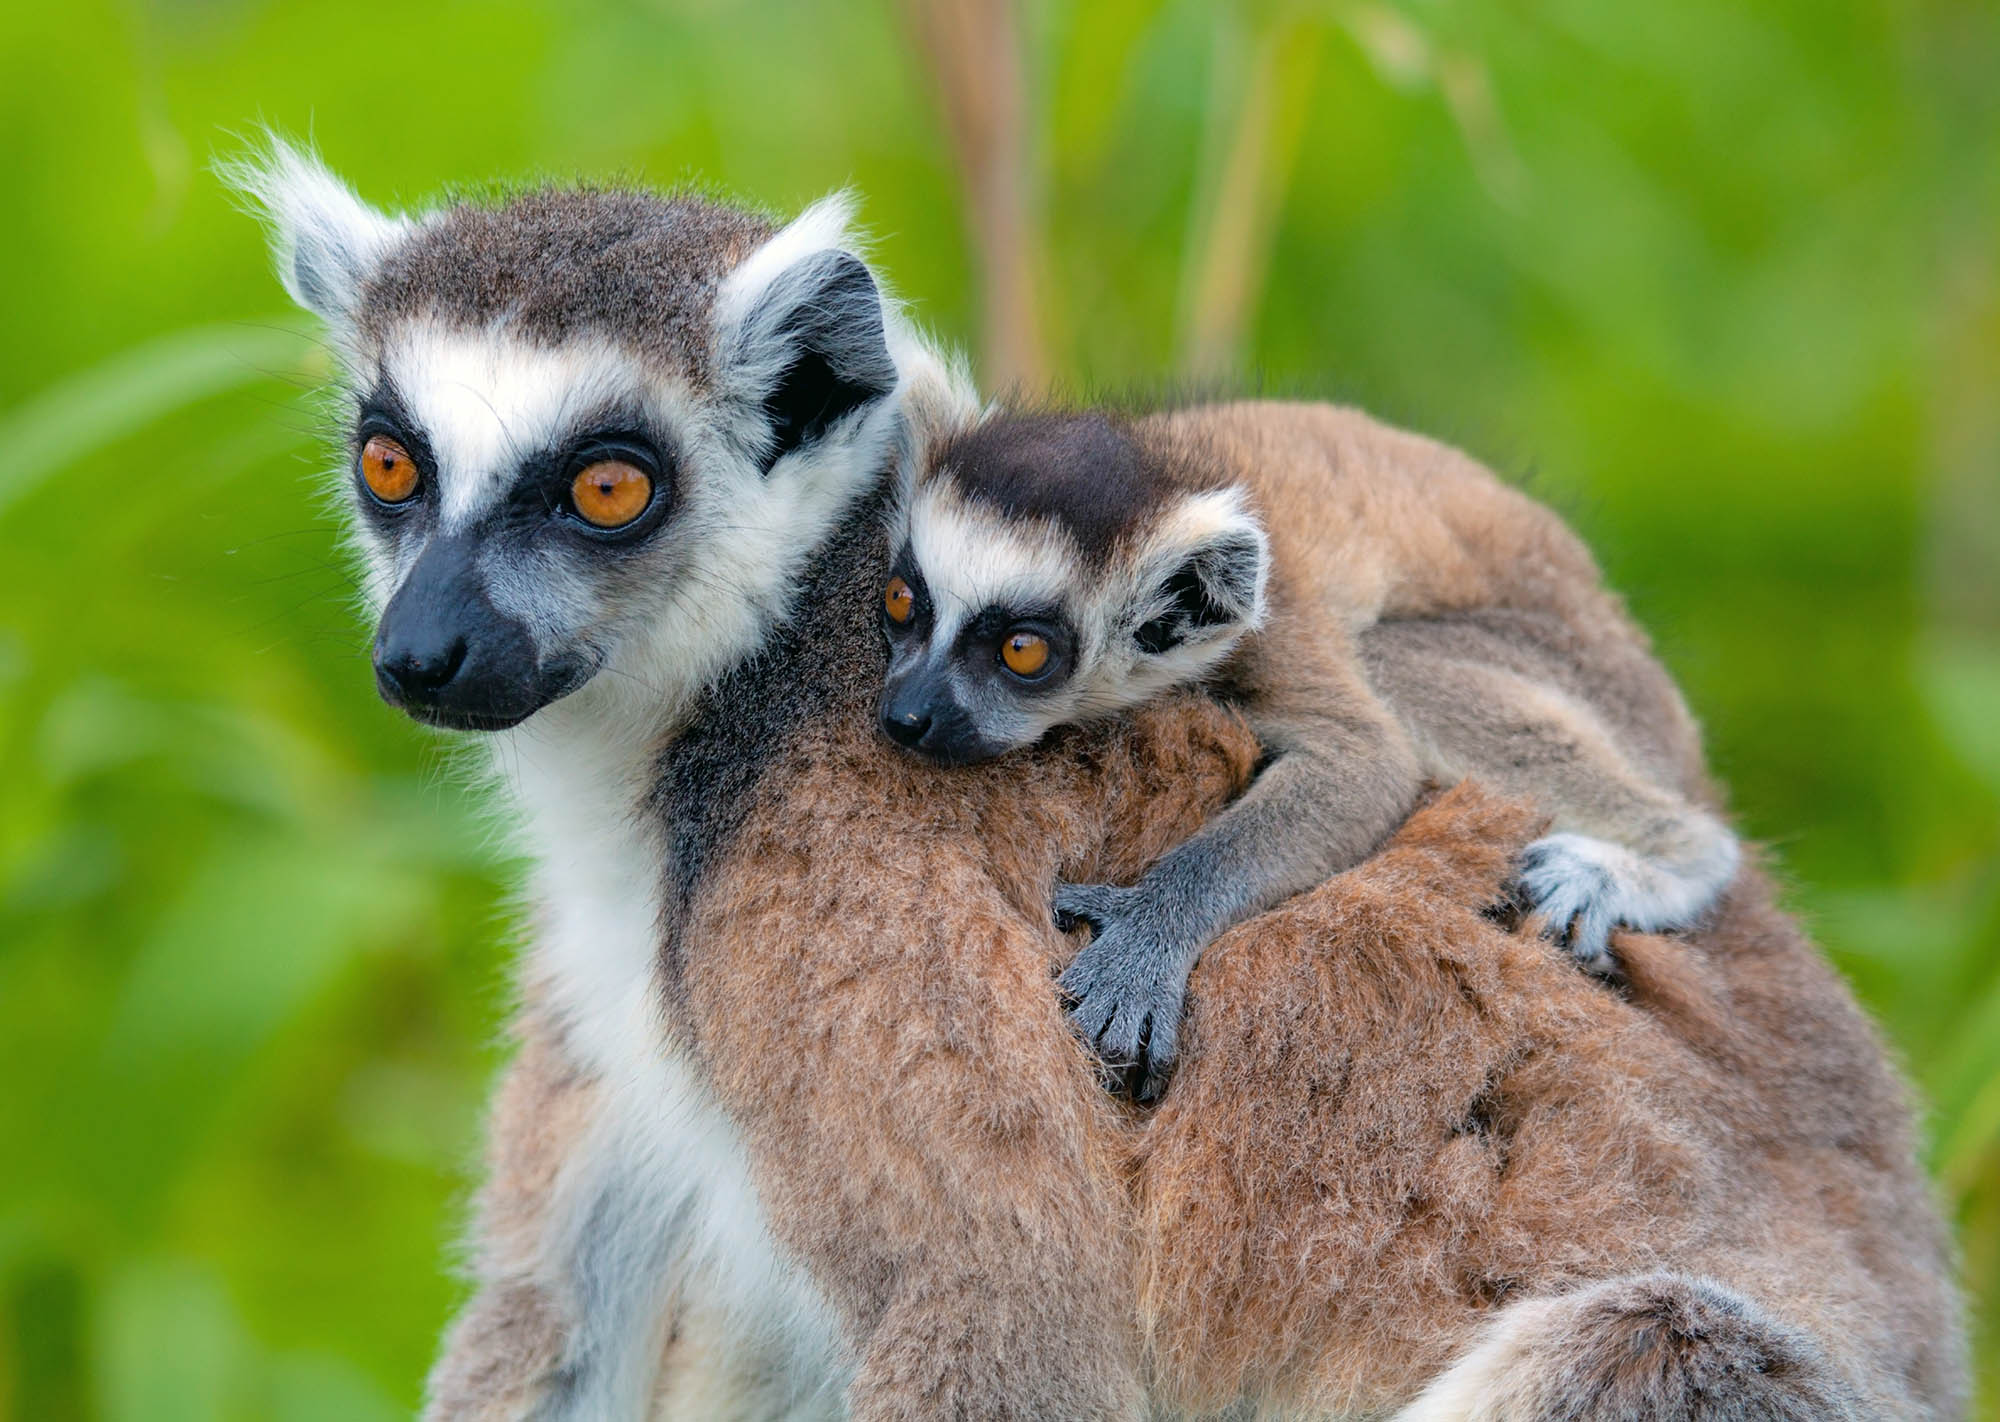 Mother Lemur and baby in Madagascar.